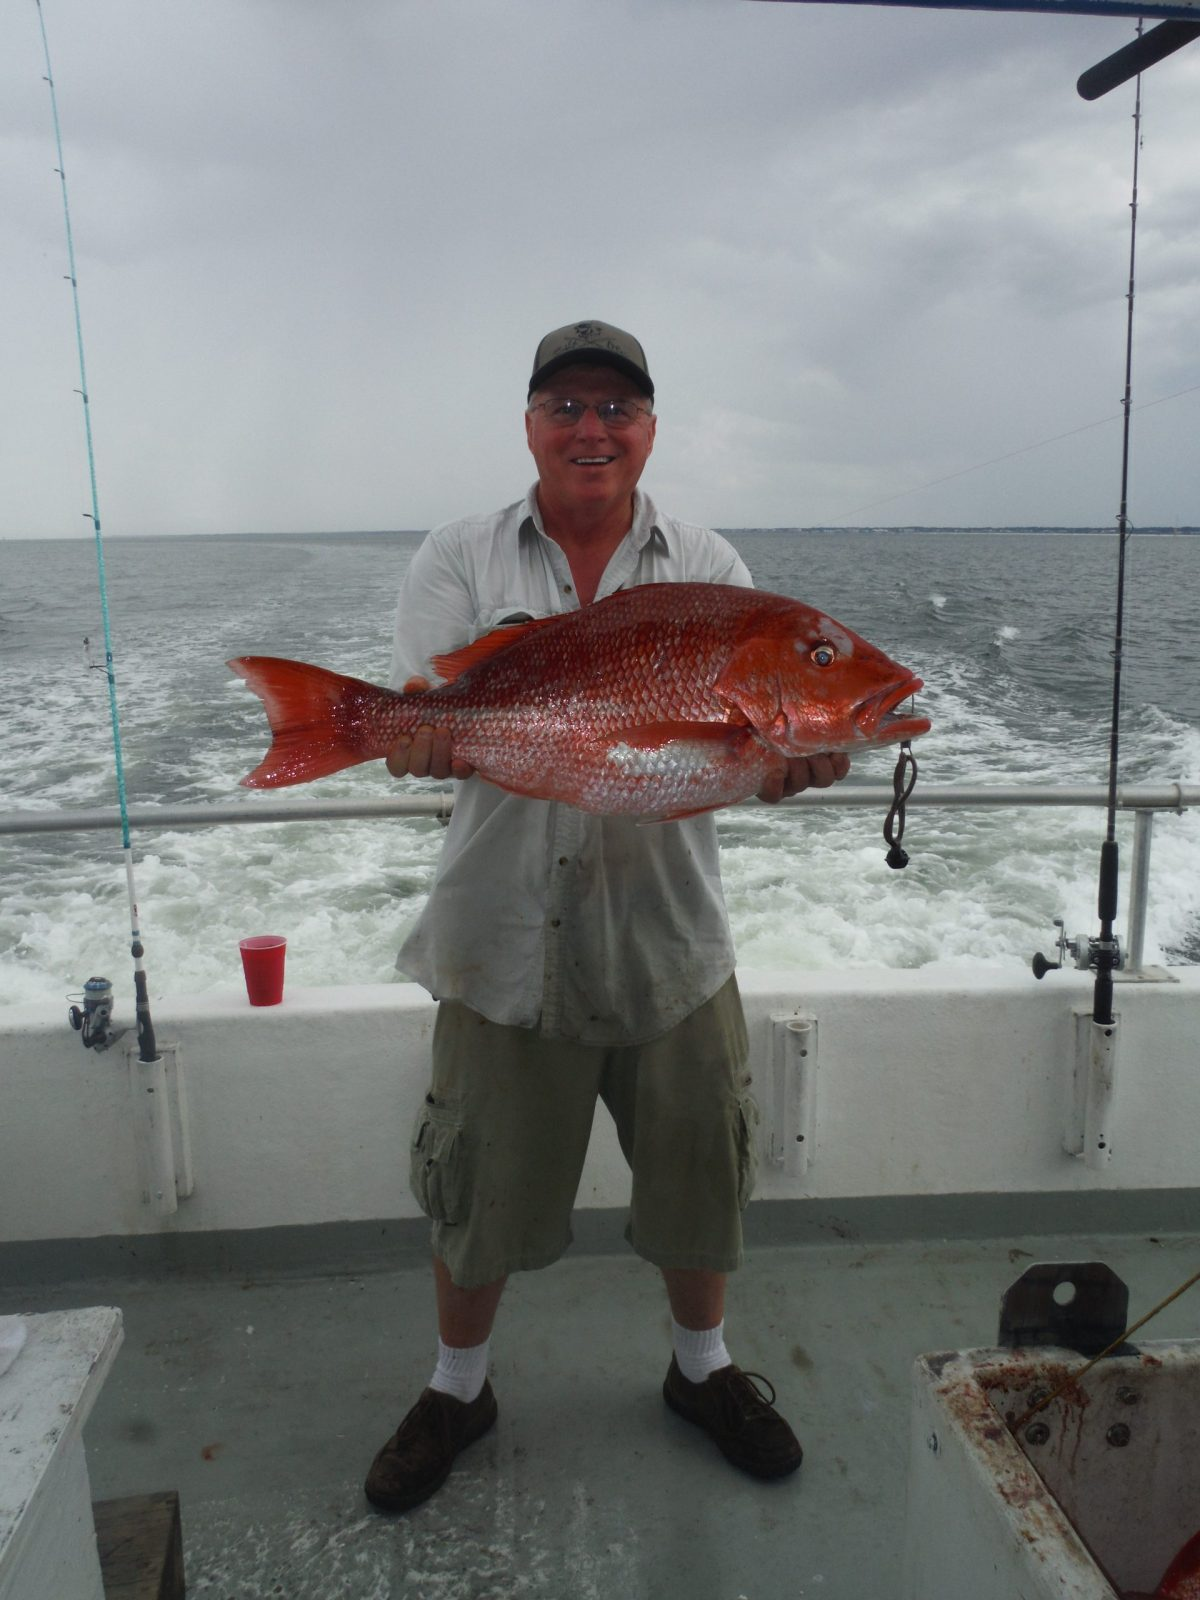 Man holding a red snapper